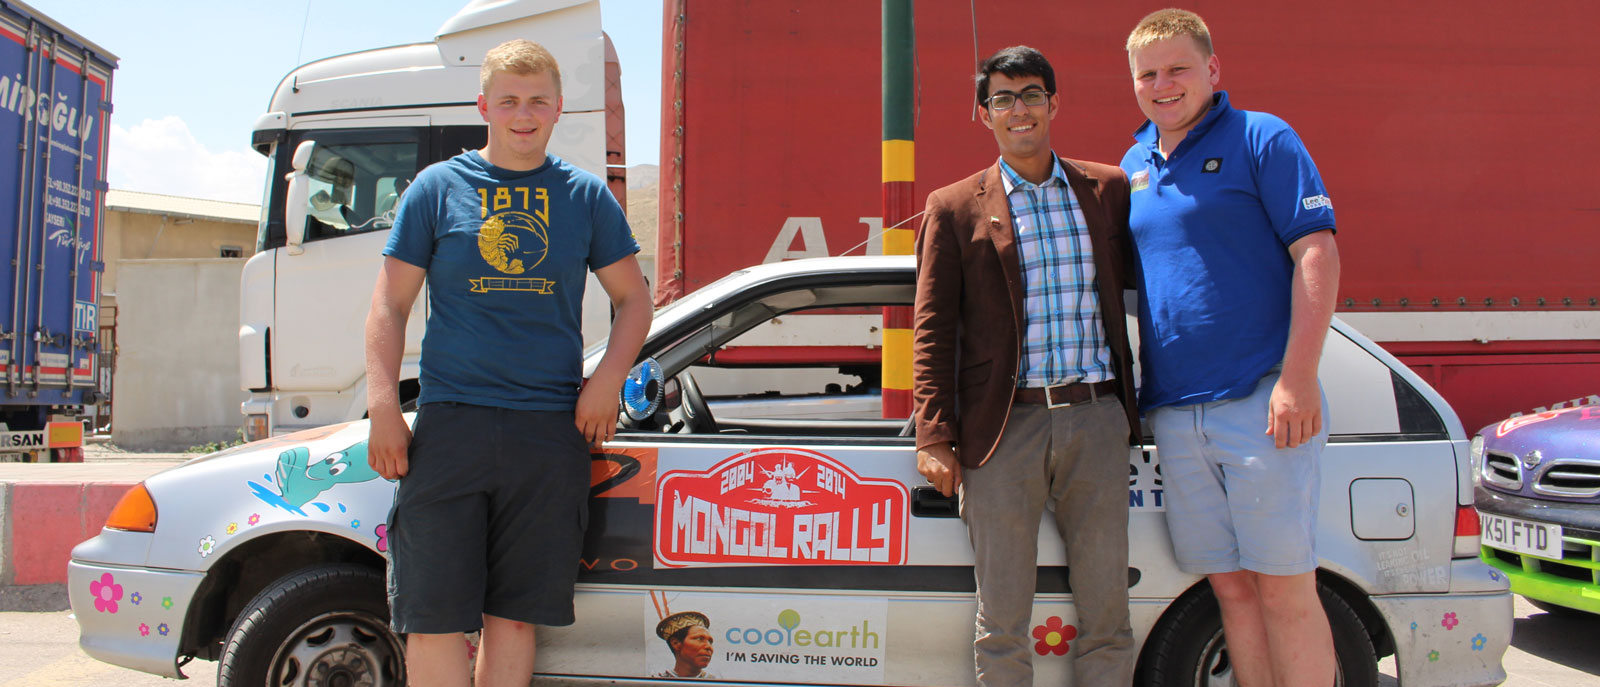 Hossein with Mongol Rally Team 2014